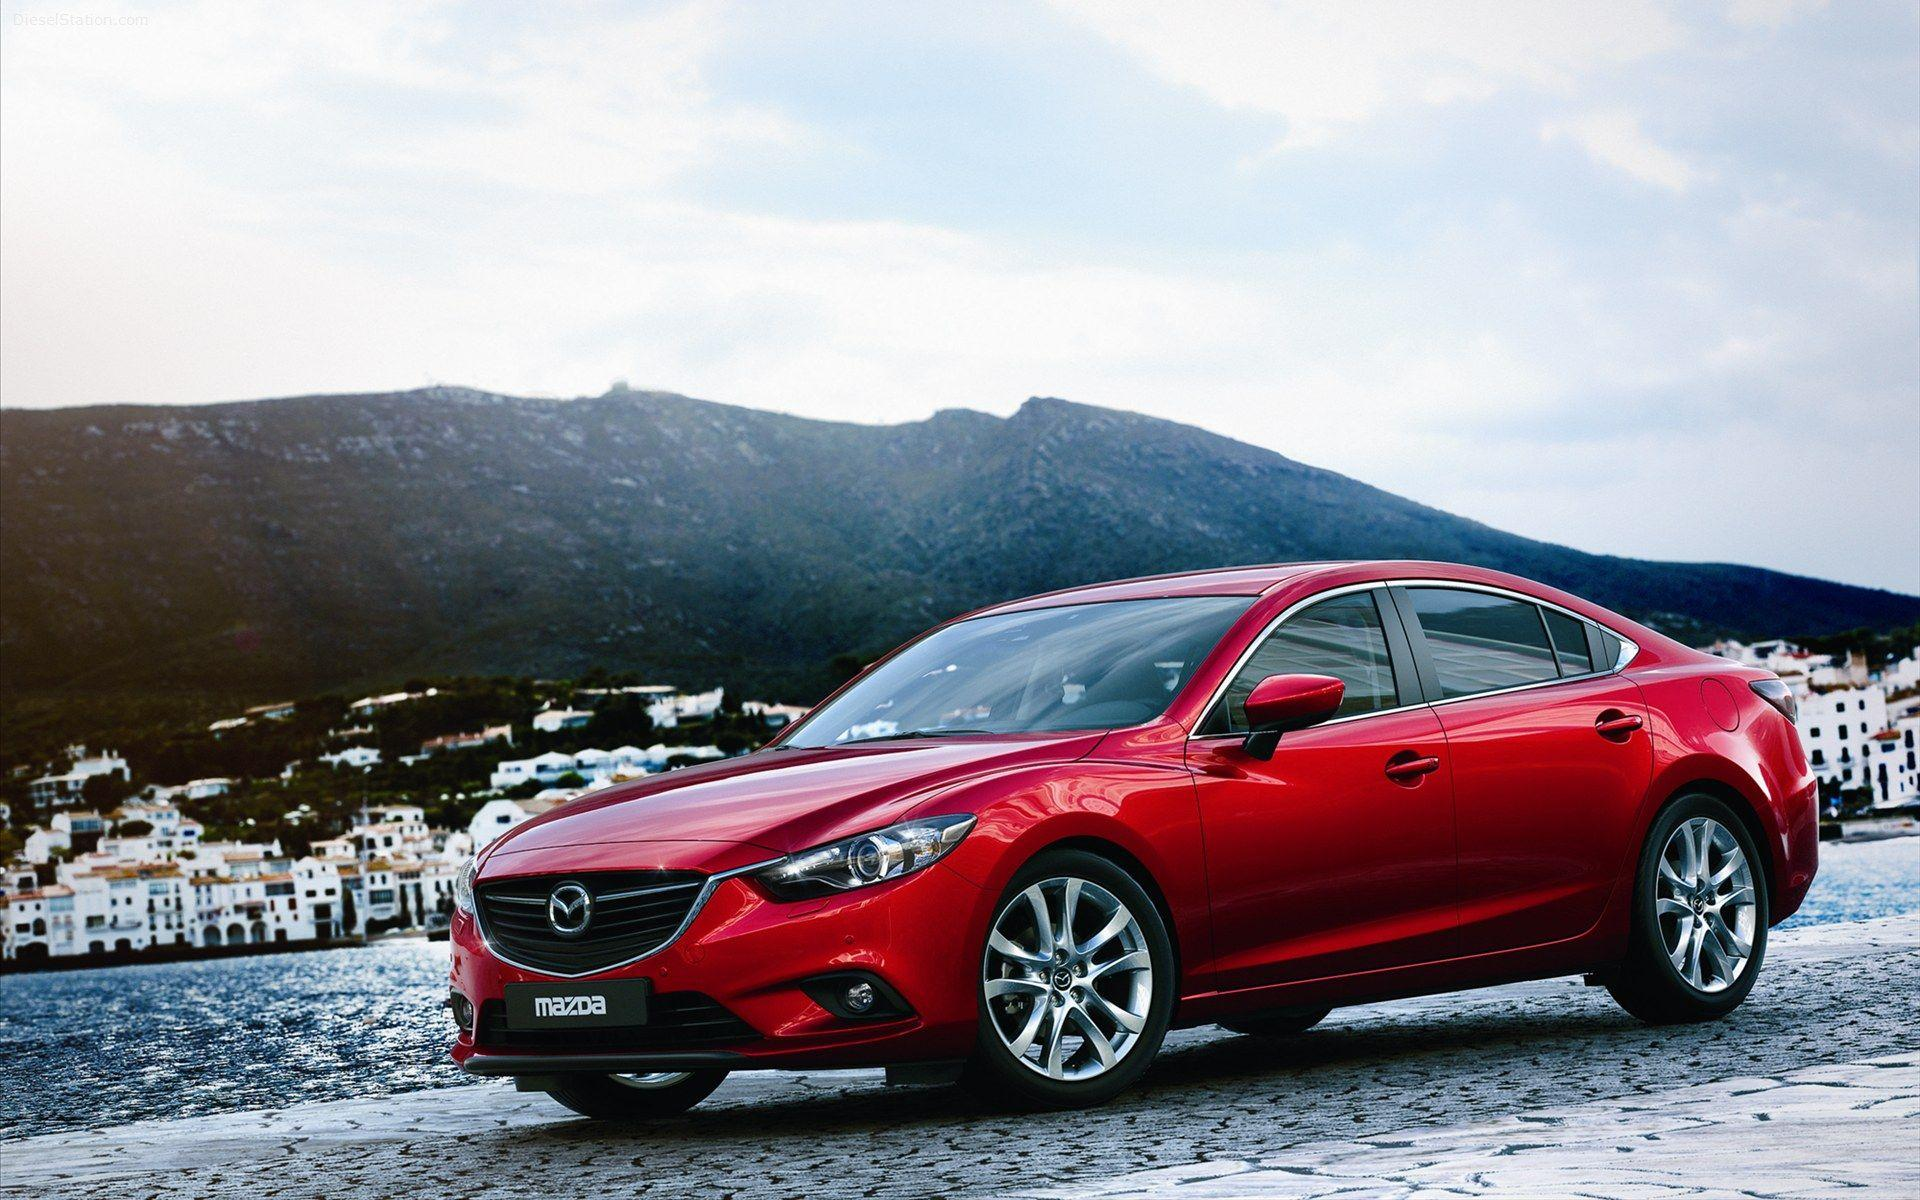 SM:846 - Mazda 6 Wallpapers, Superb Mazda 6 HD Wallpapers - GG.YAN